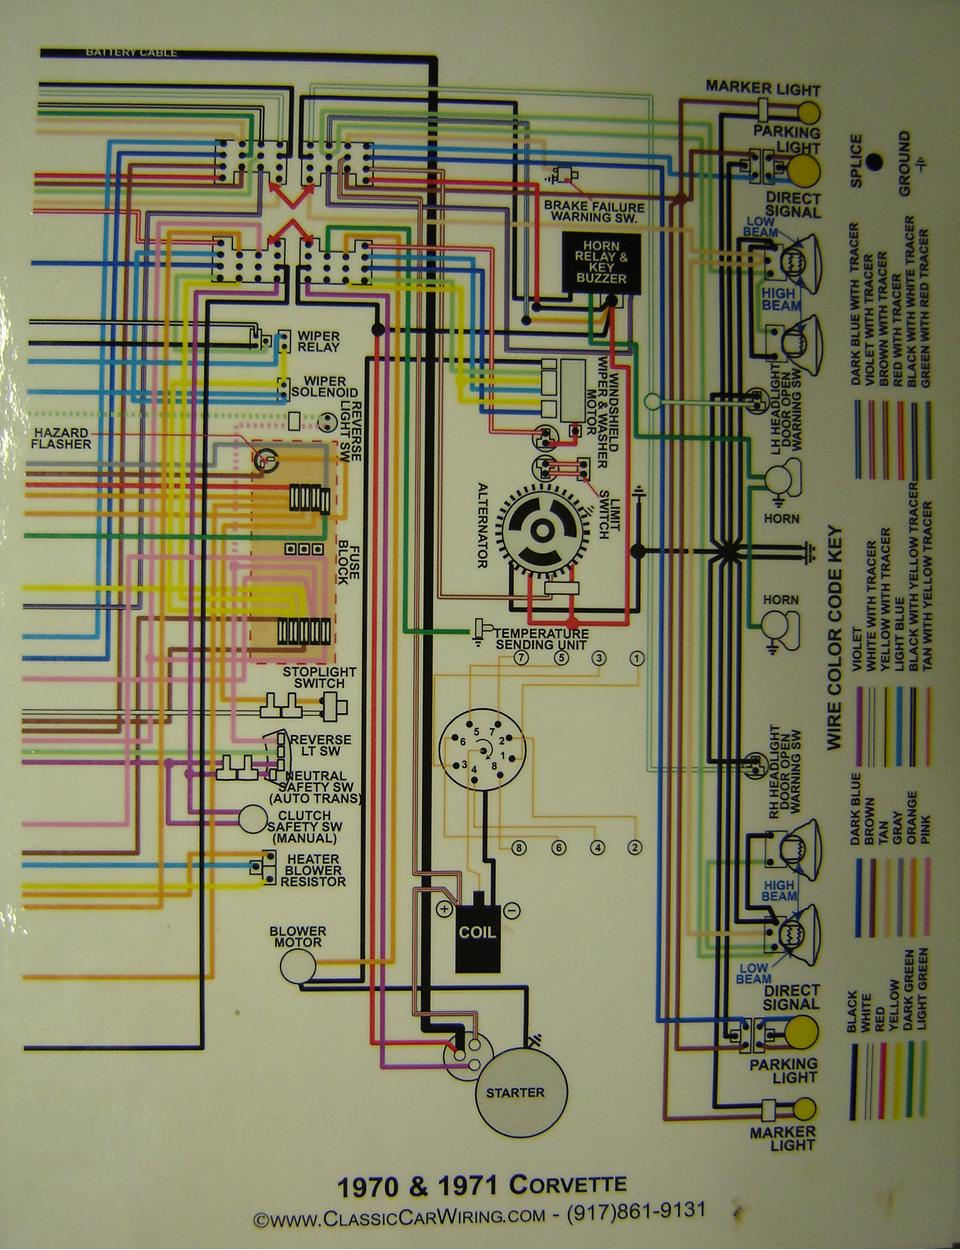 1970 71 corvette color wiring diagram B chevy diagrams corvette electrical diagrams at mifinder.co